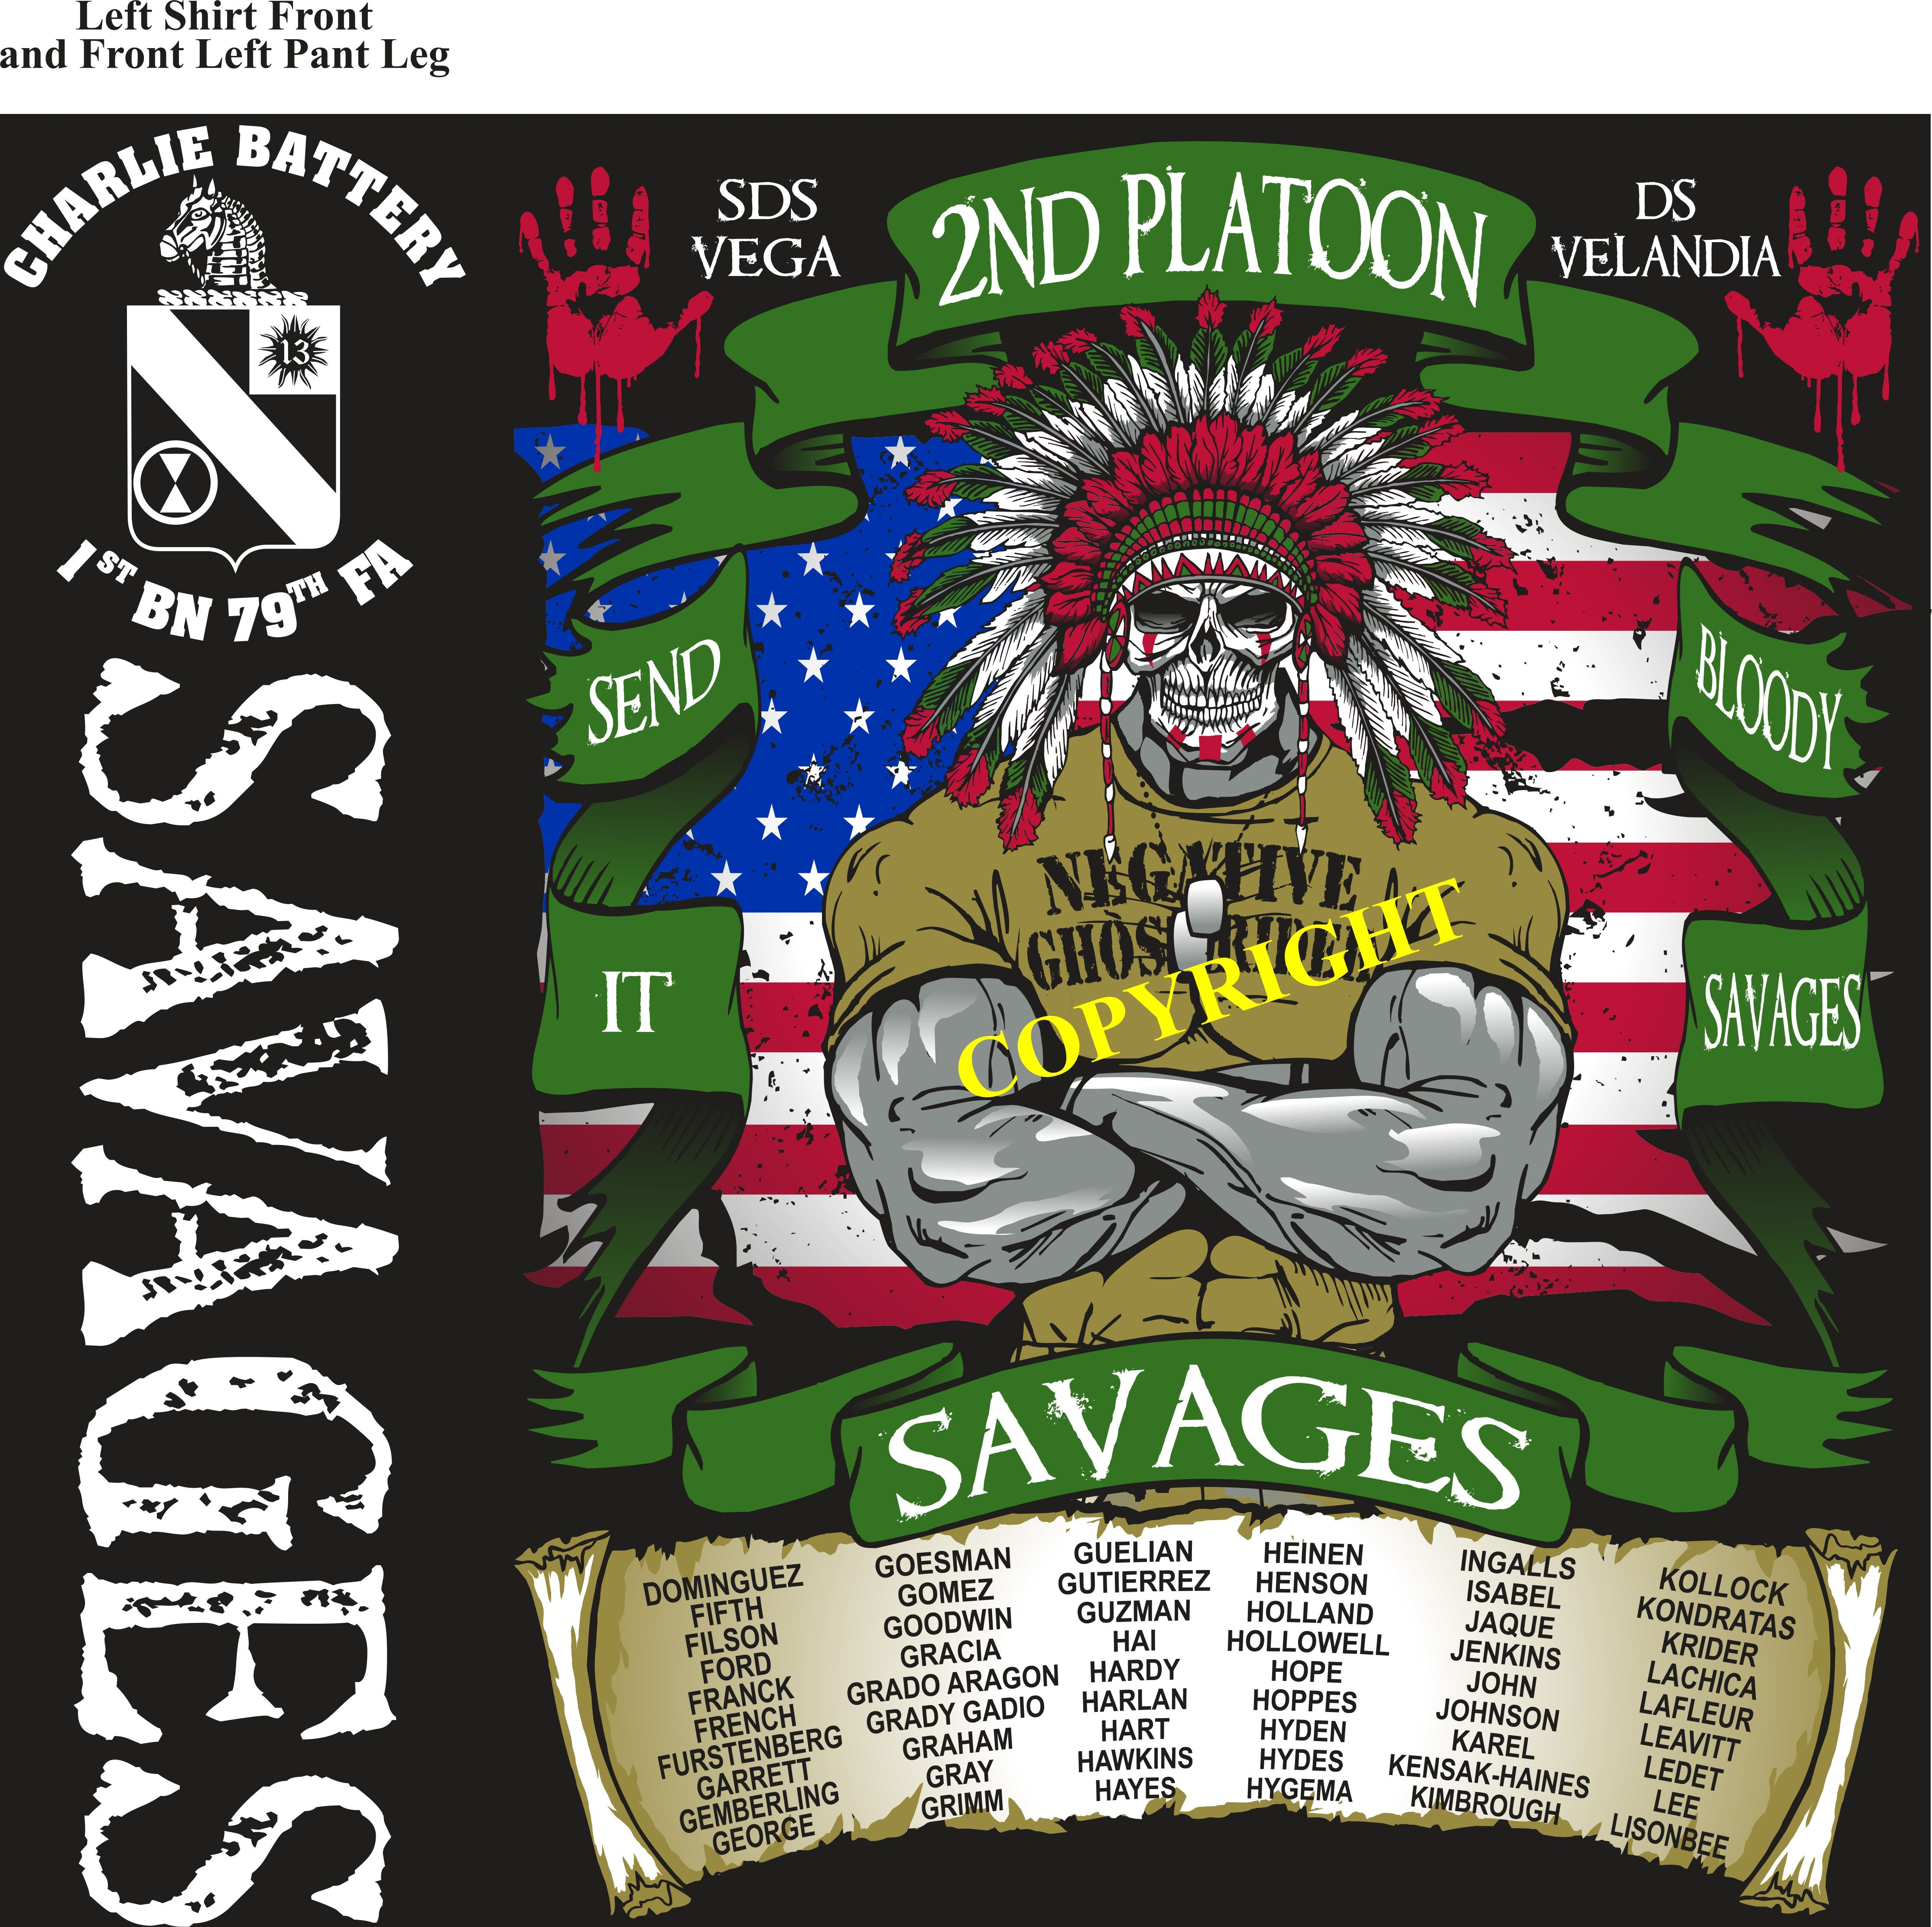 Platoon Shirts (2nd generation print) CHARLIE 1st 79th SAVAGES NOV 2018